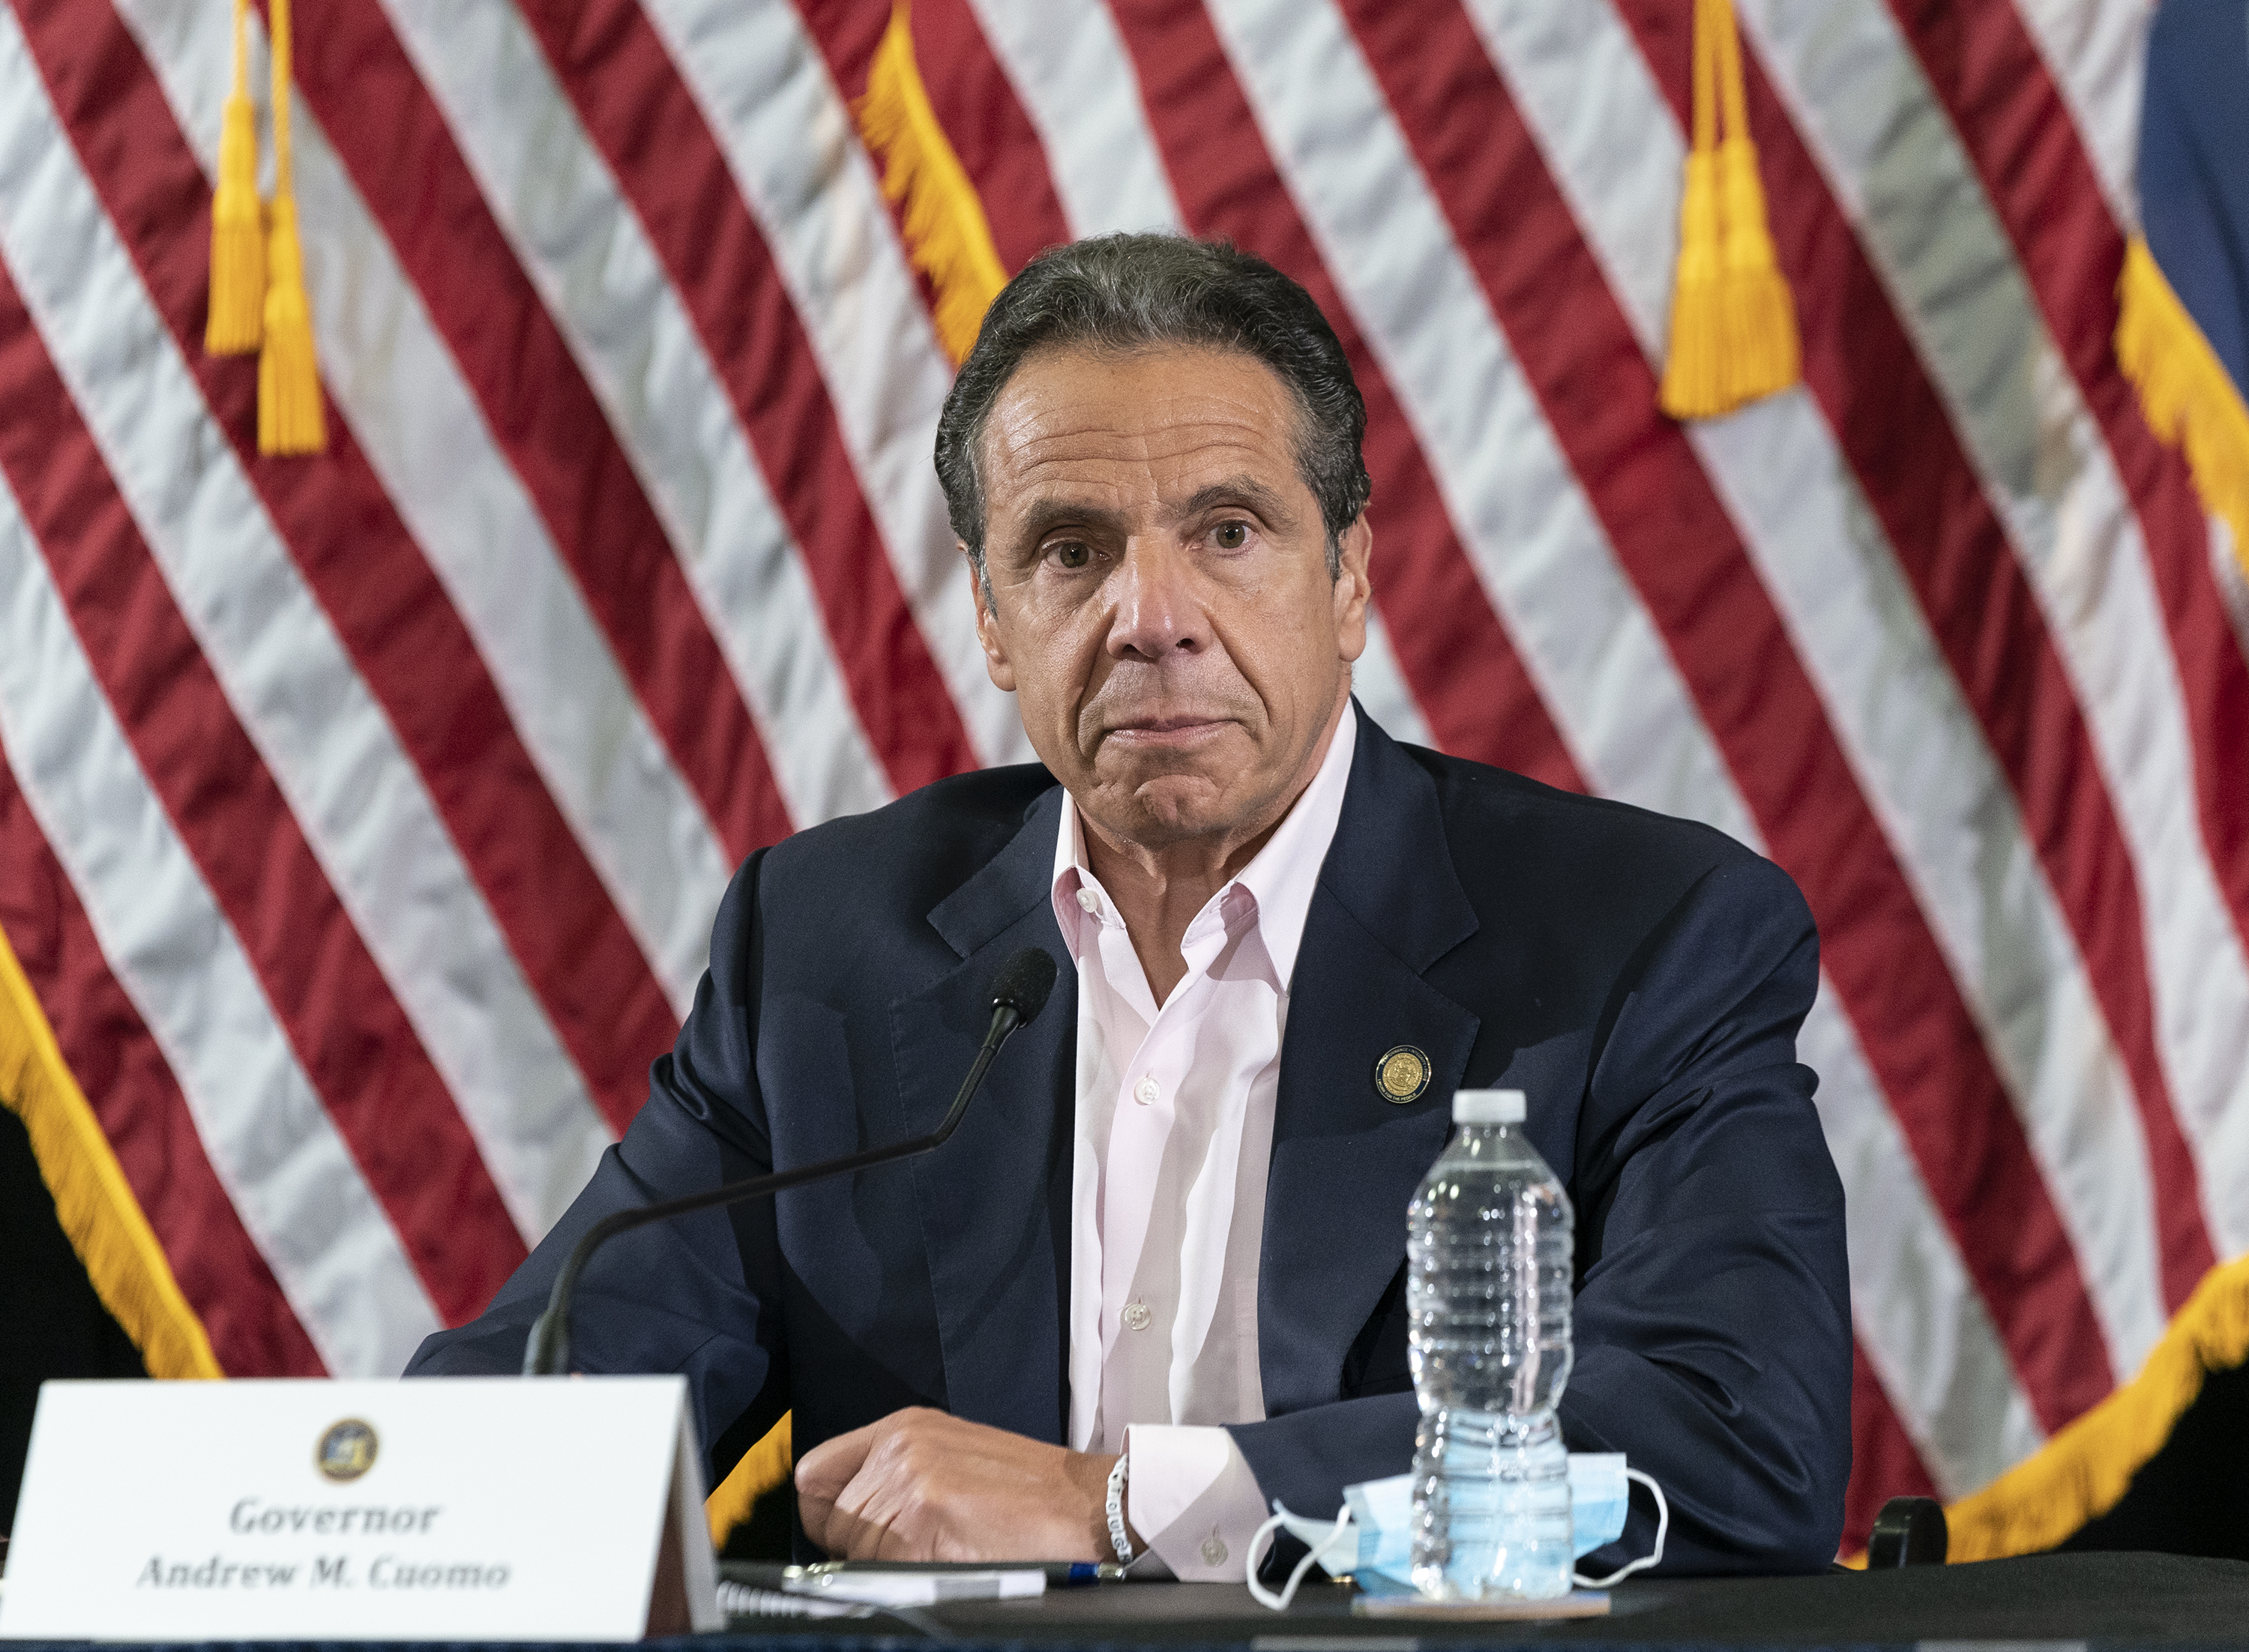 New York Gov. Andrew Cuomo speaks during a media briefing on May 30.